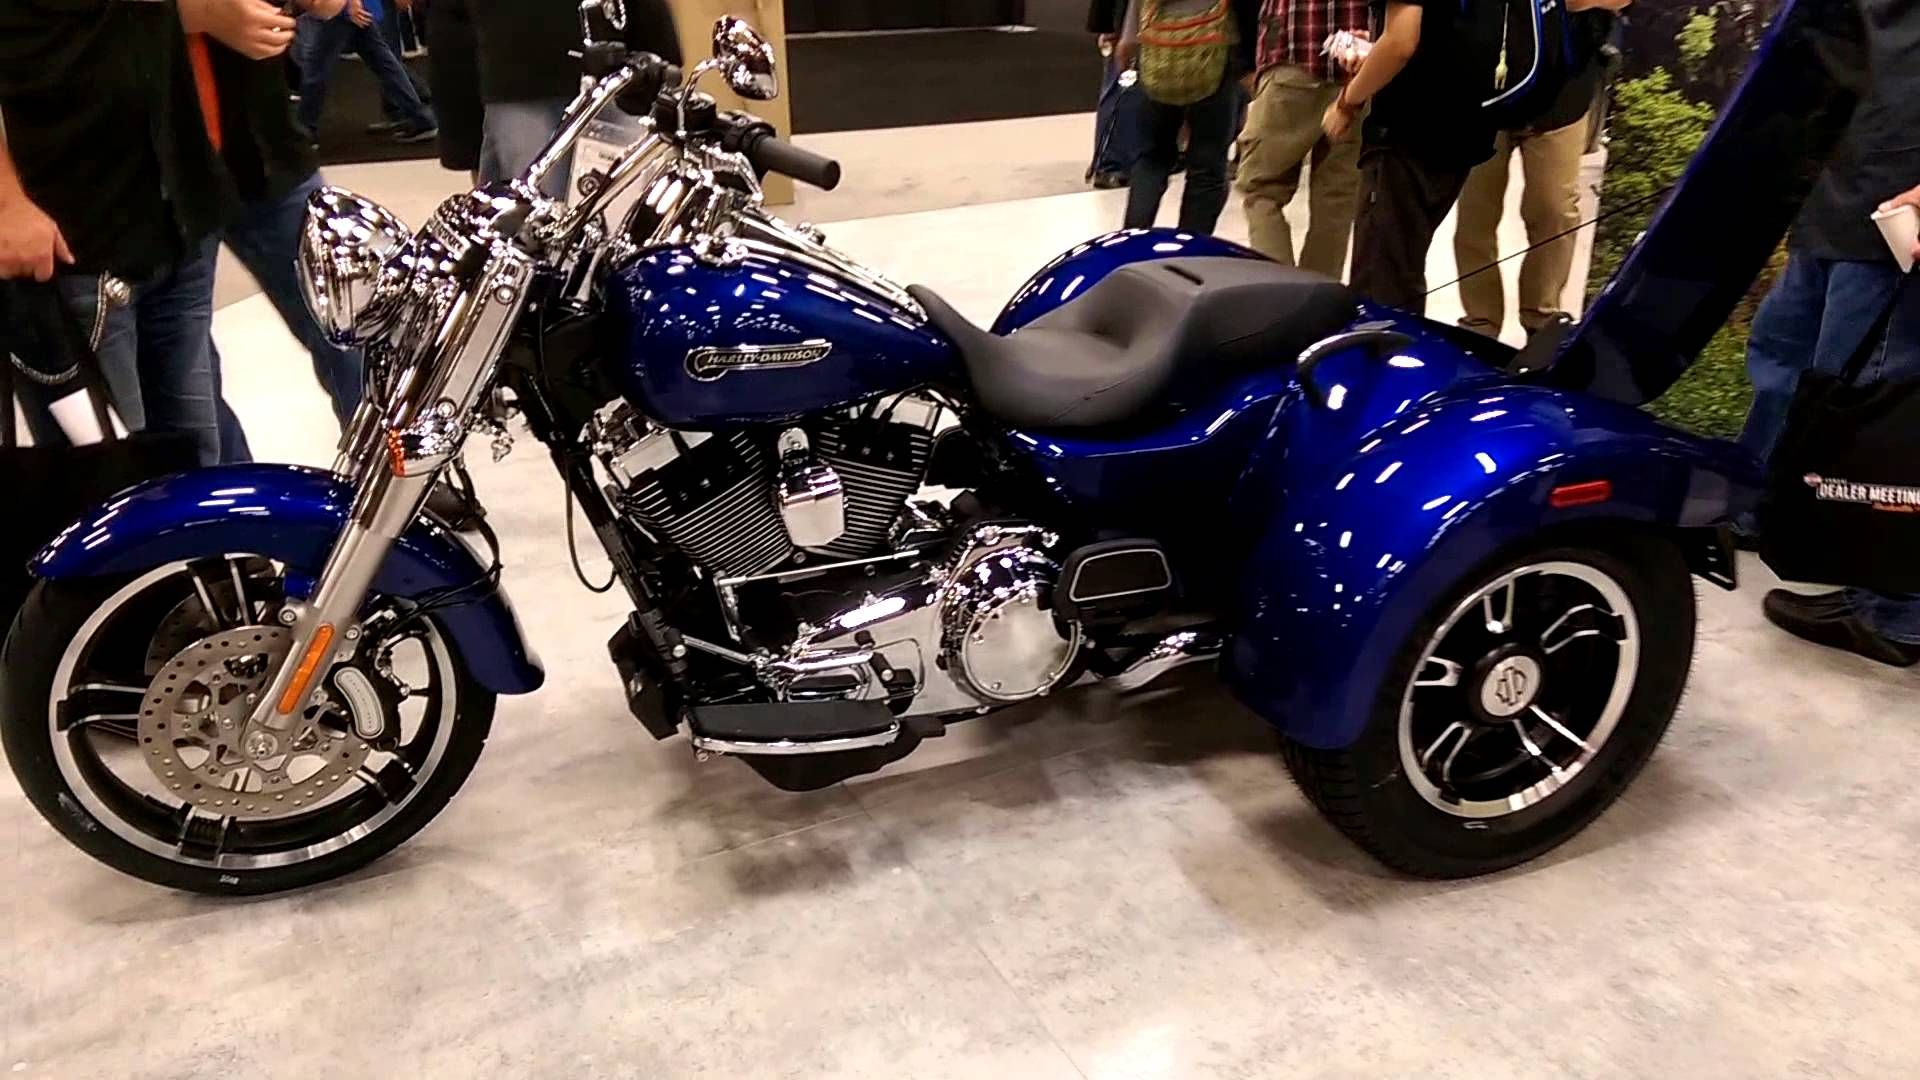 Harley davidson 2015 harley davidson freewheeler electric reverse puts convenient control at your fingertips for confident easy movement for parking